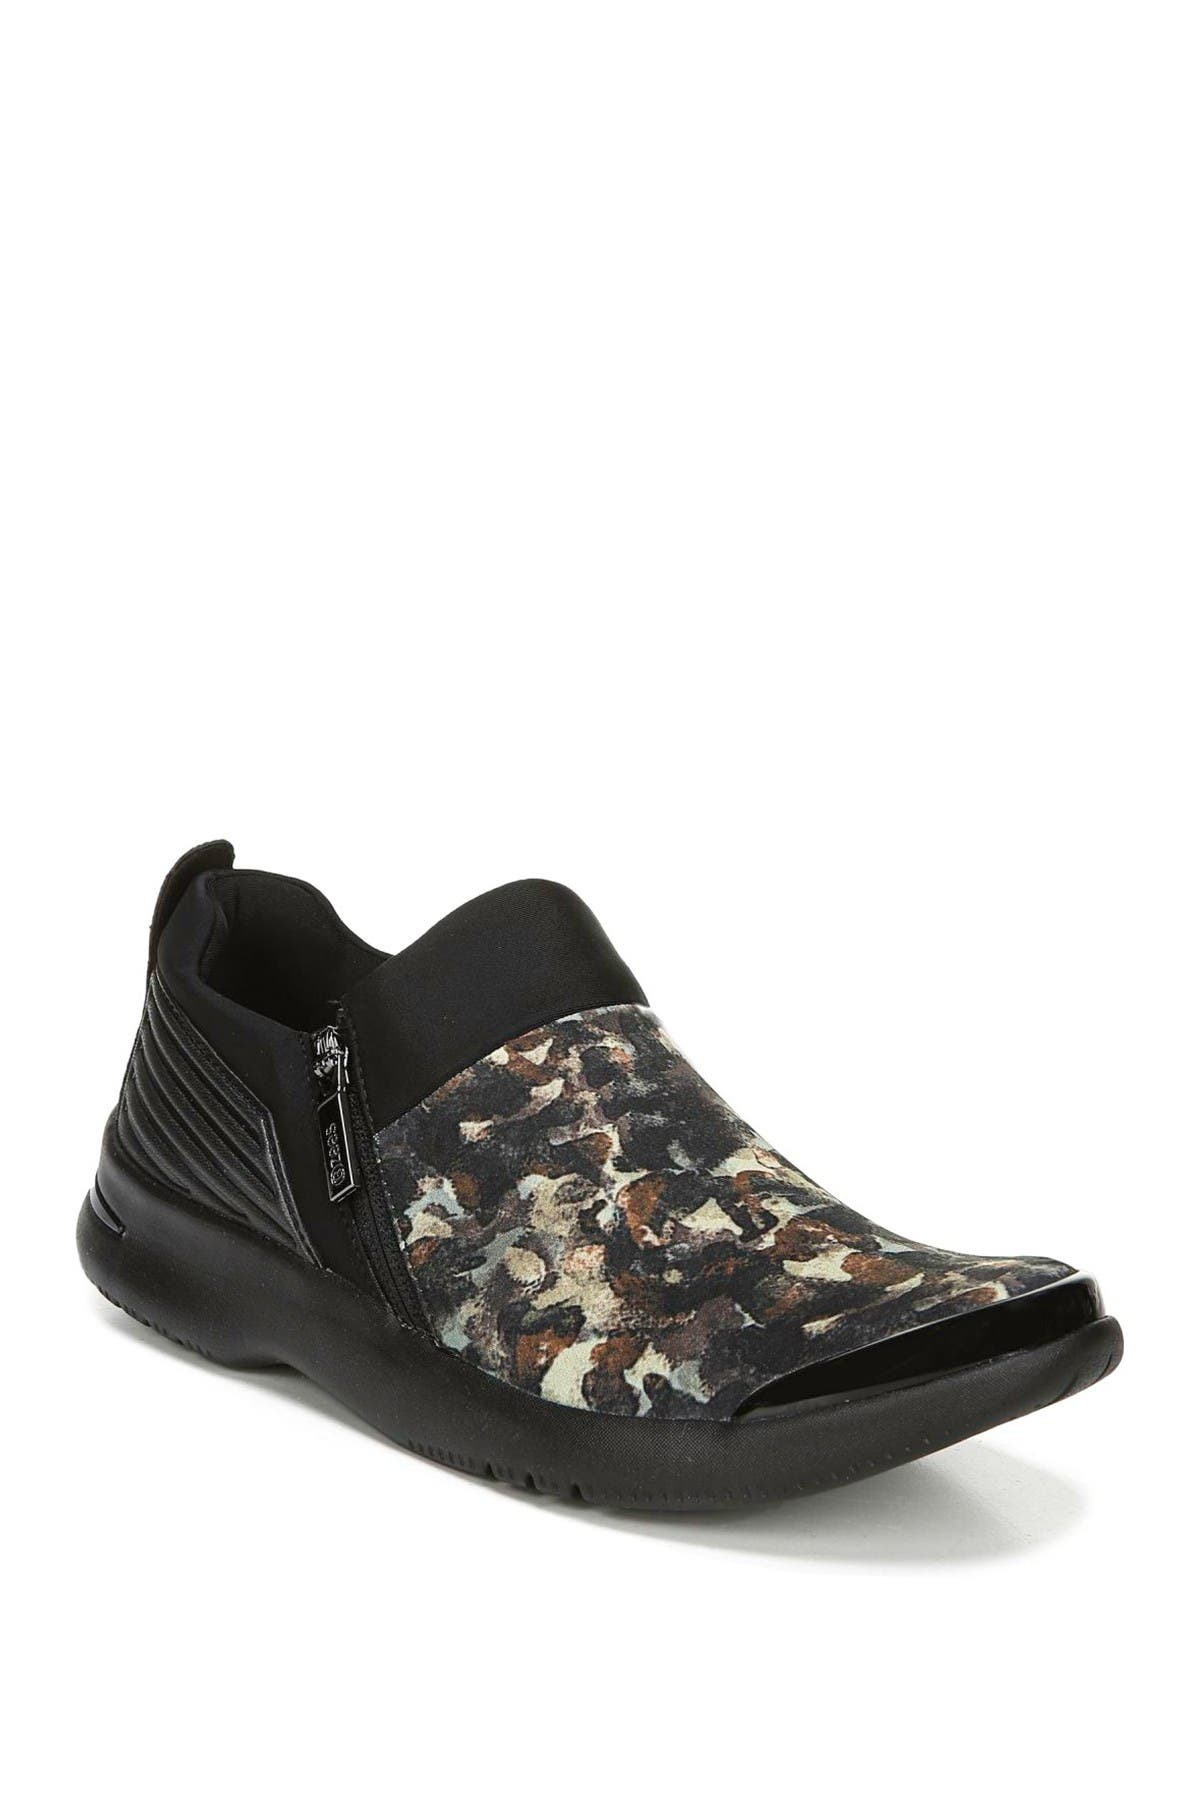 Image of BZEES Axis Slip On Sneaker Boot